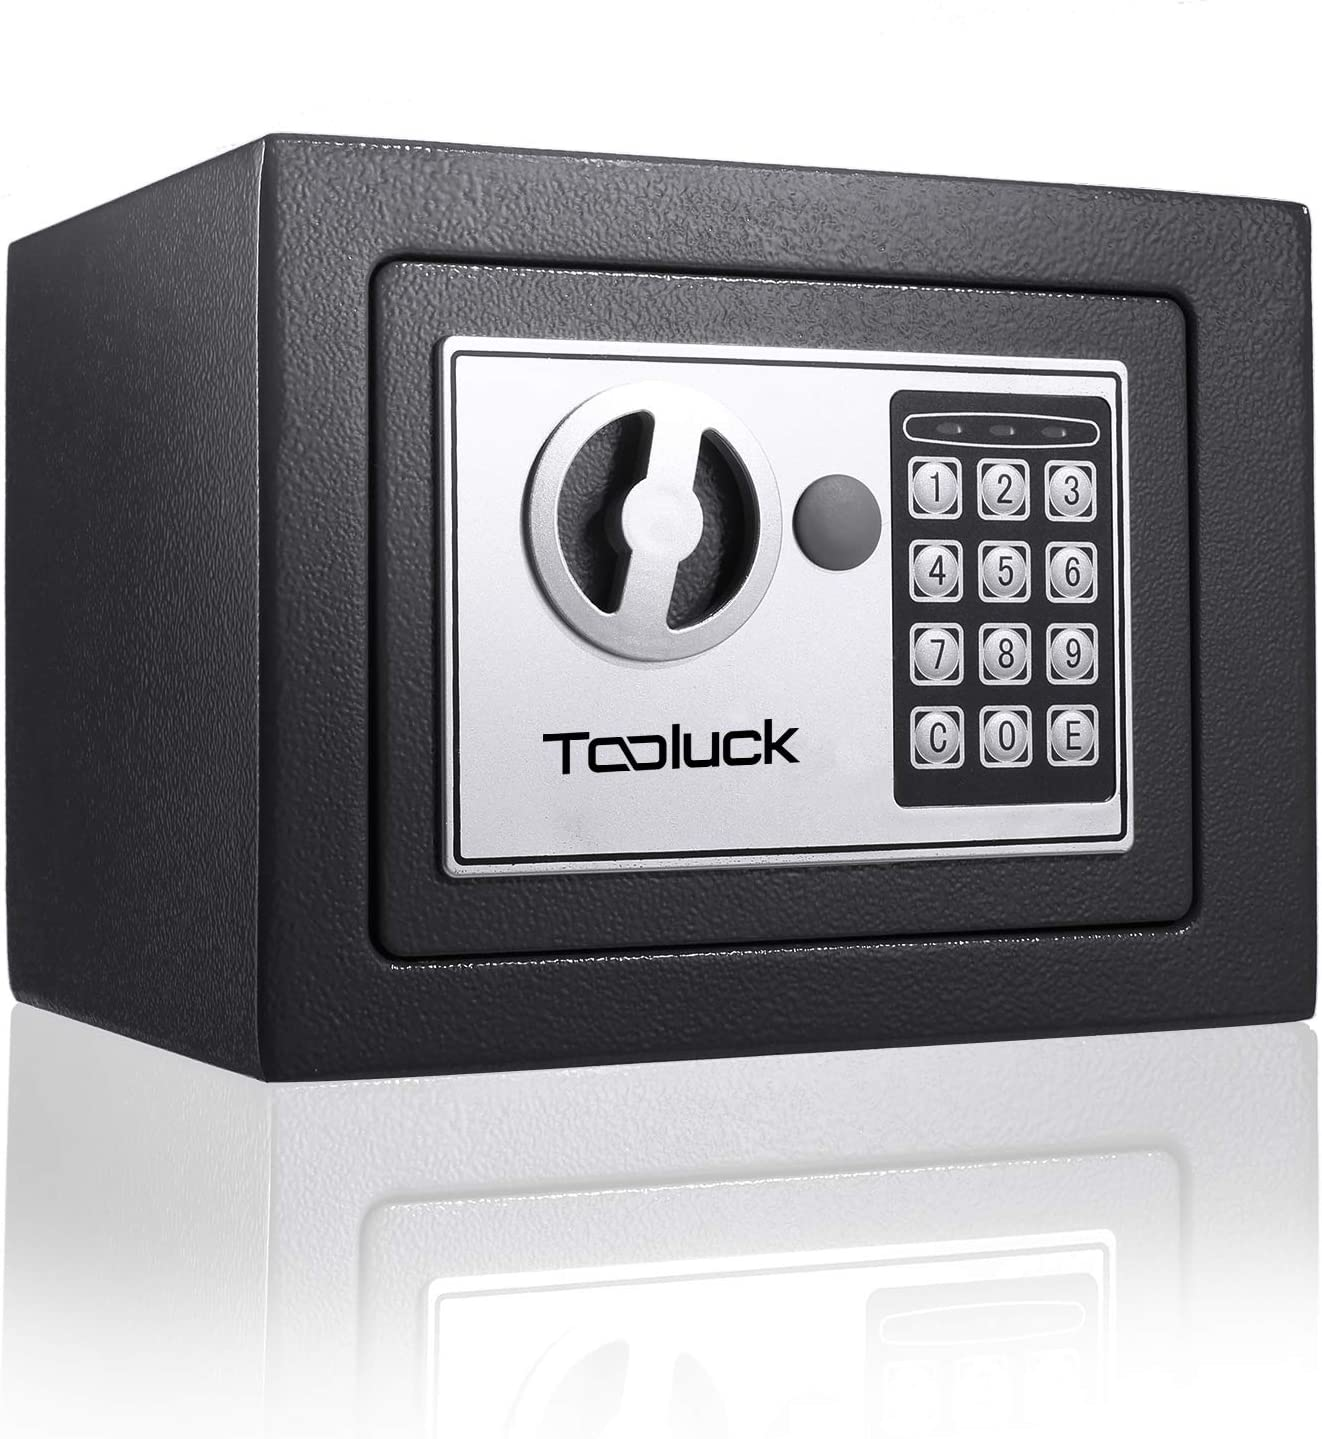 Tooluck Safe, Lock Box, Electronic Digital Safe, Keypad Safe Lock Box with Keys, Money Box and Safe Box for Cash Gun Jewelry Home Office Hotel Security Storage (Black)